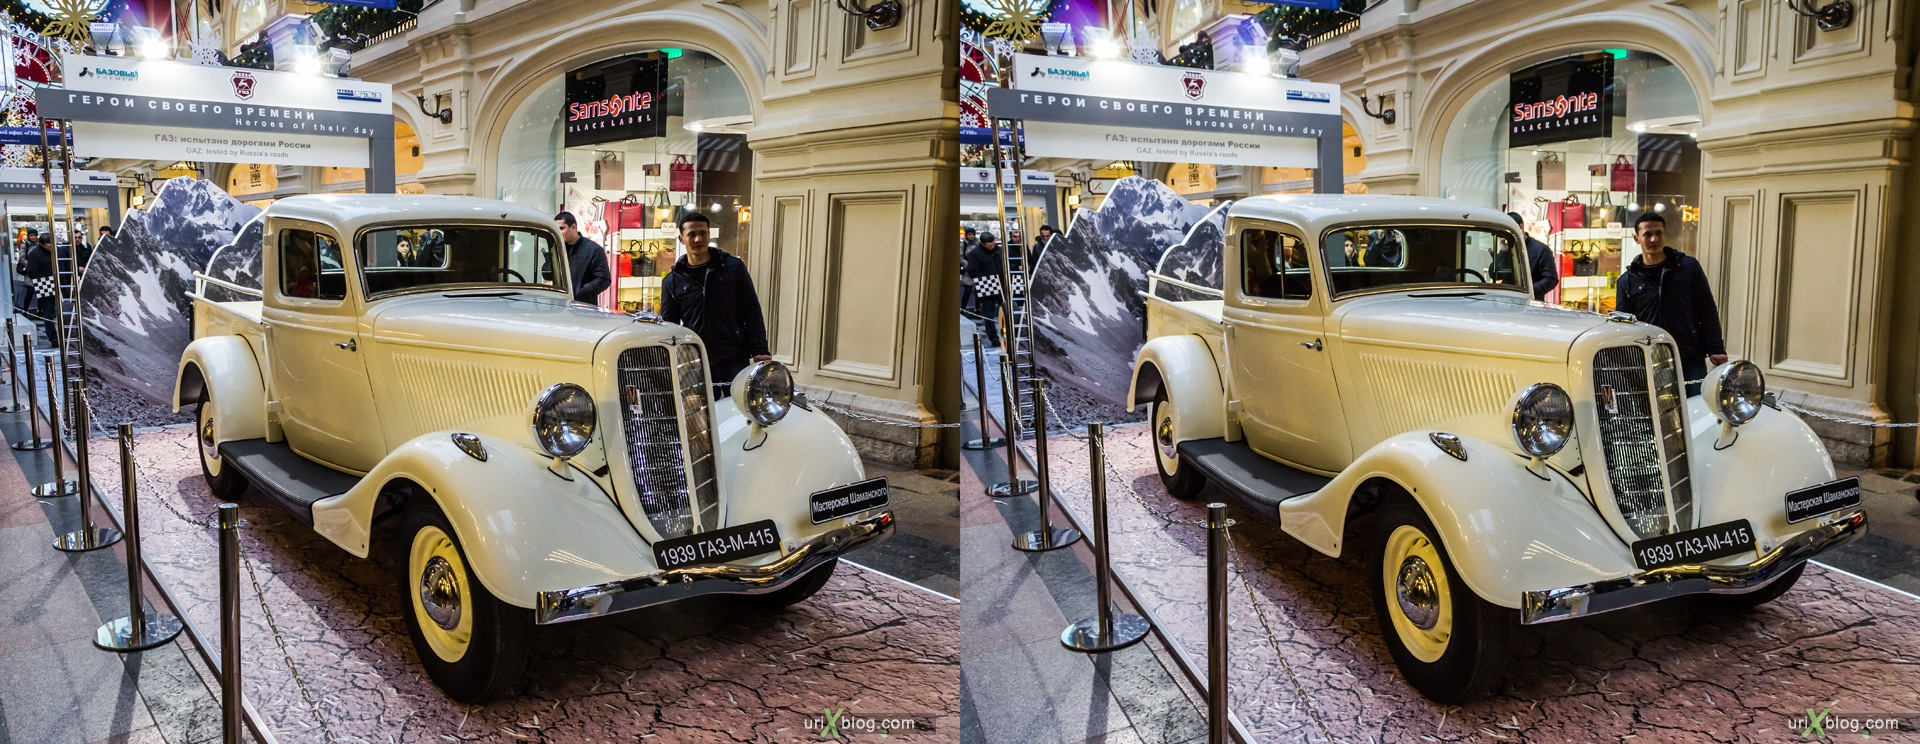 2013, Moscow, Russia, GAZ-M-415, GUM, old, automobile, vehicle, exhibition, shop, mall, 3D, stereo pair, cross-eyed, crossview, cross view stereo pair, stereoscopic